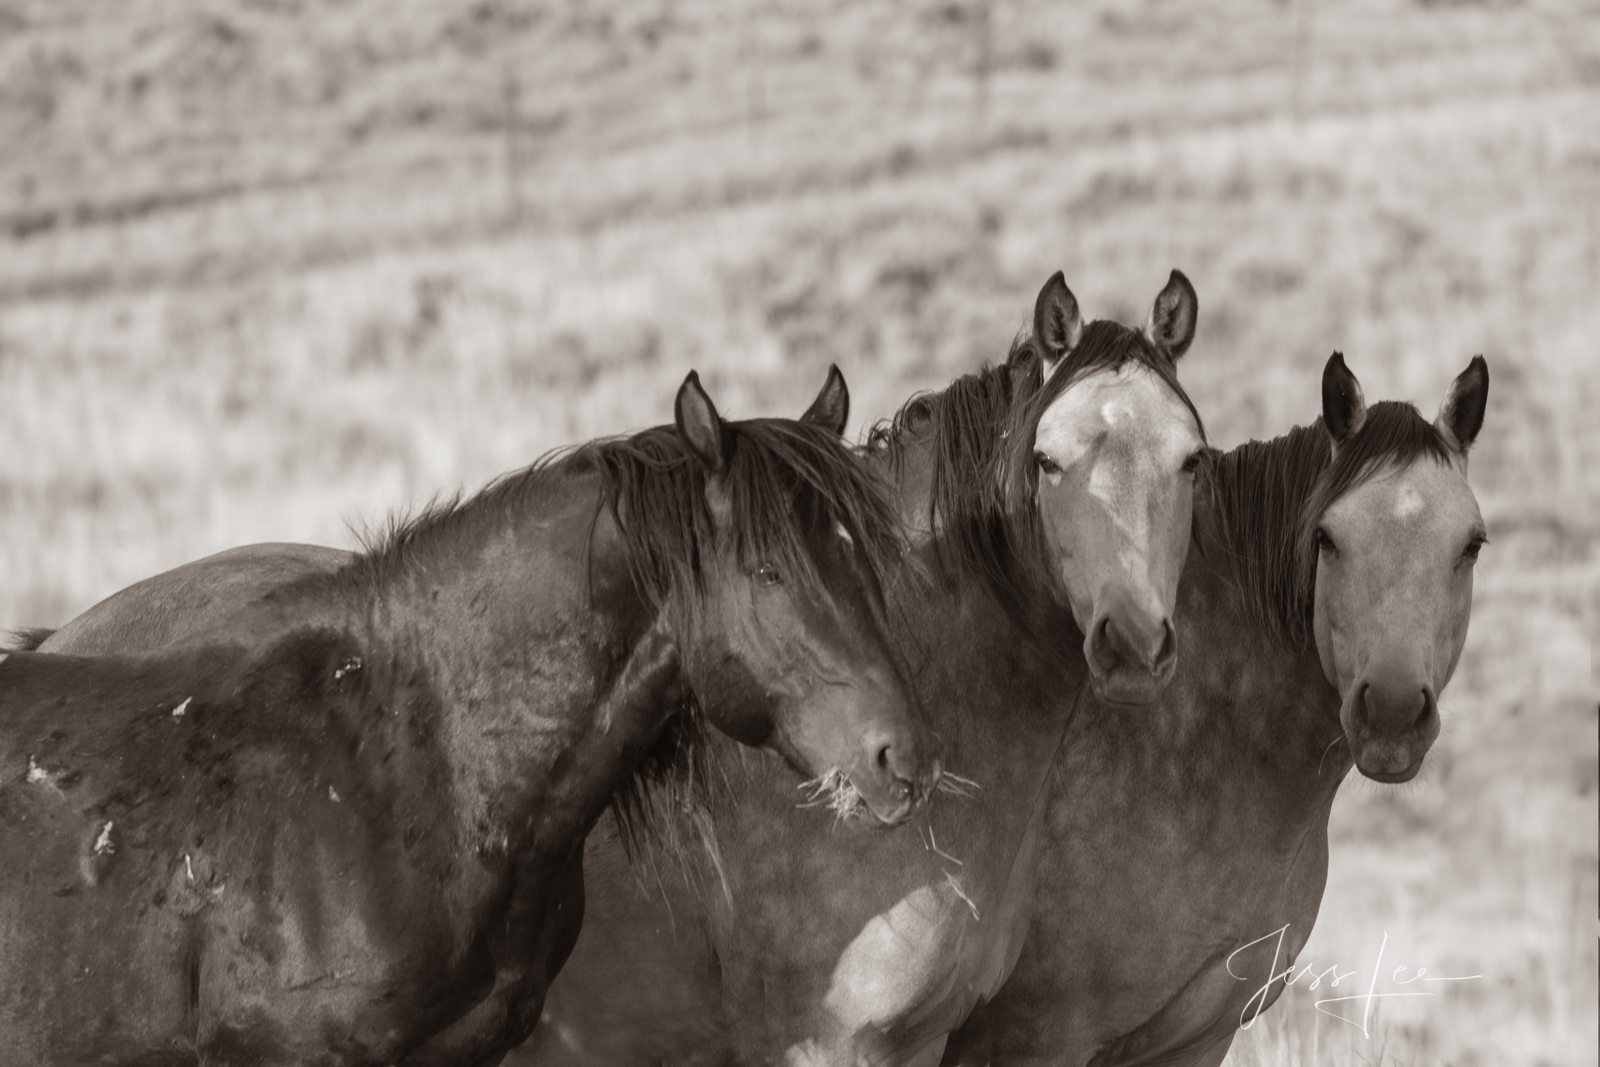 Fine Art Print of three Wyoming Wild Horses. Limited Edition of 250 Luxurious Prints.  Choose the style, size, and medium for...